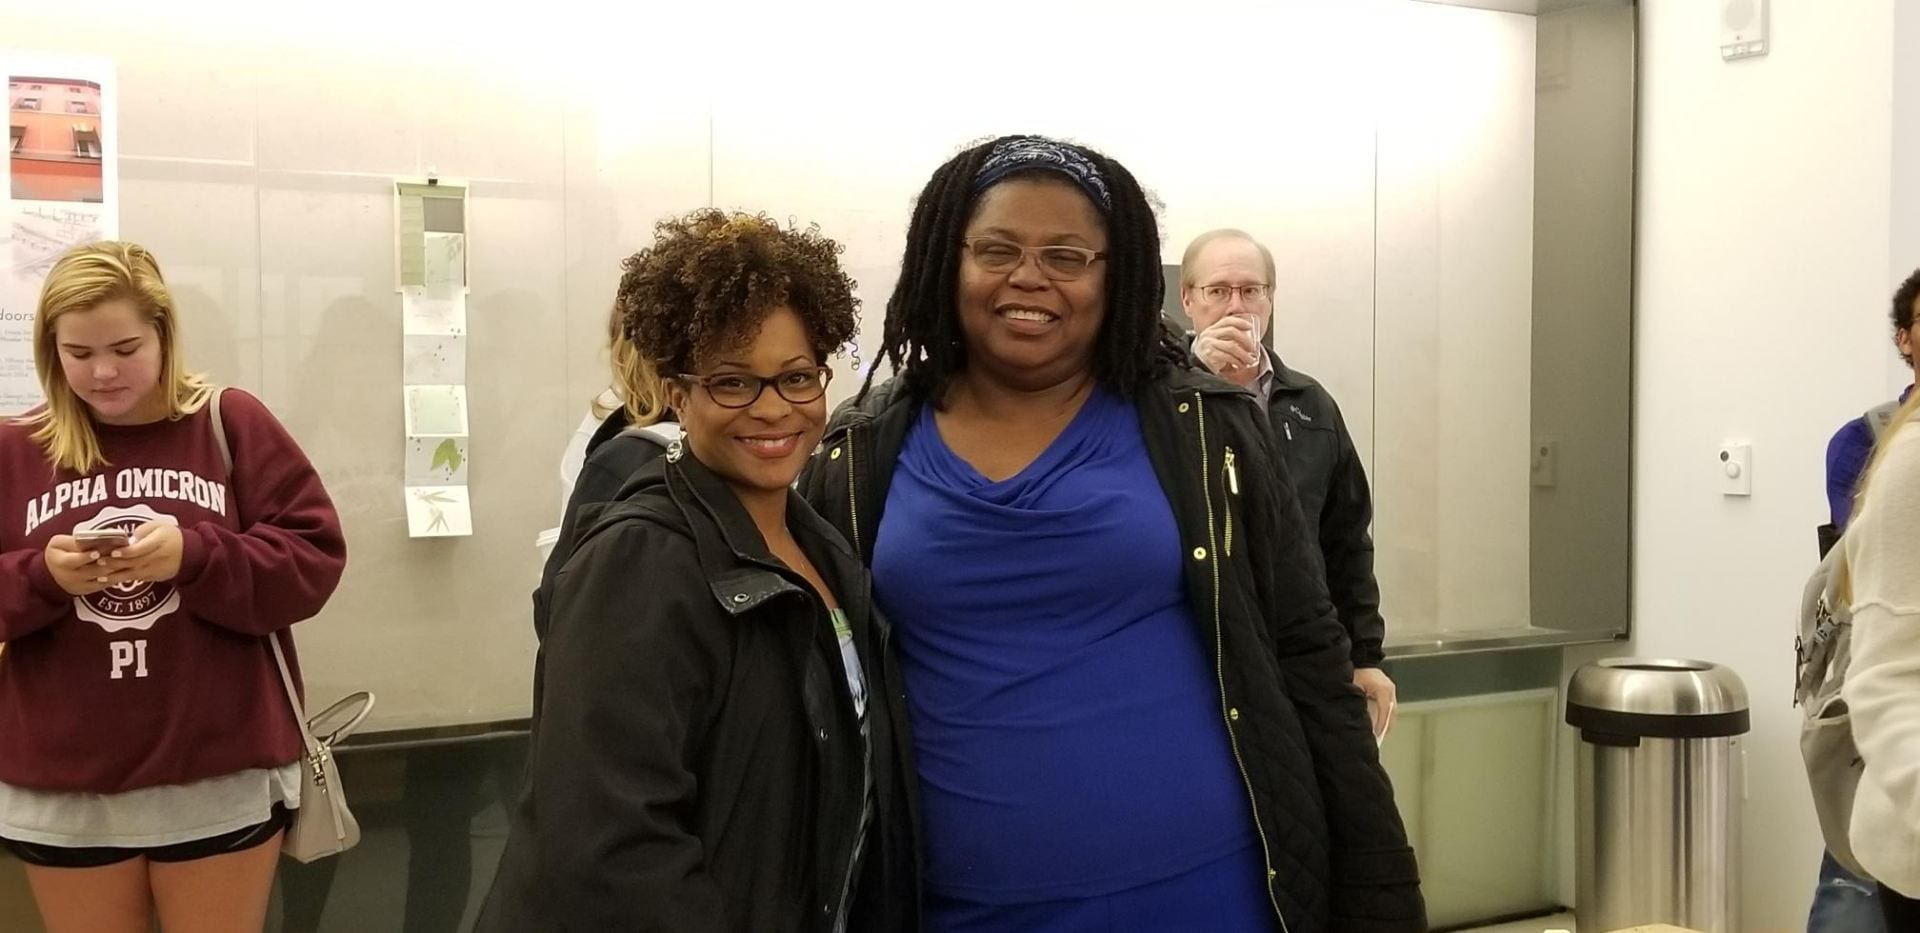 Assistant Dean of Human Resources Elecia C. Smith and Clinical Assistant Professor Lucy Brown. 10/18/18